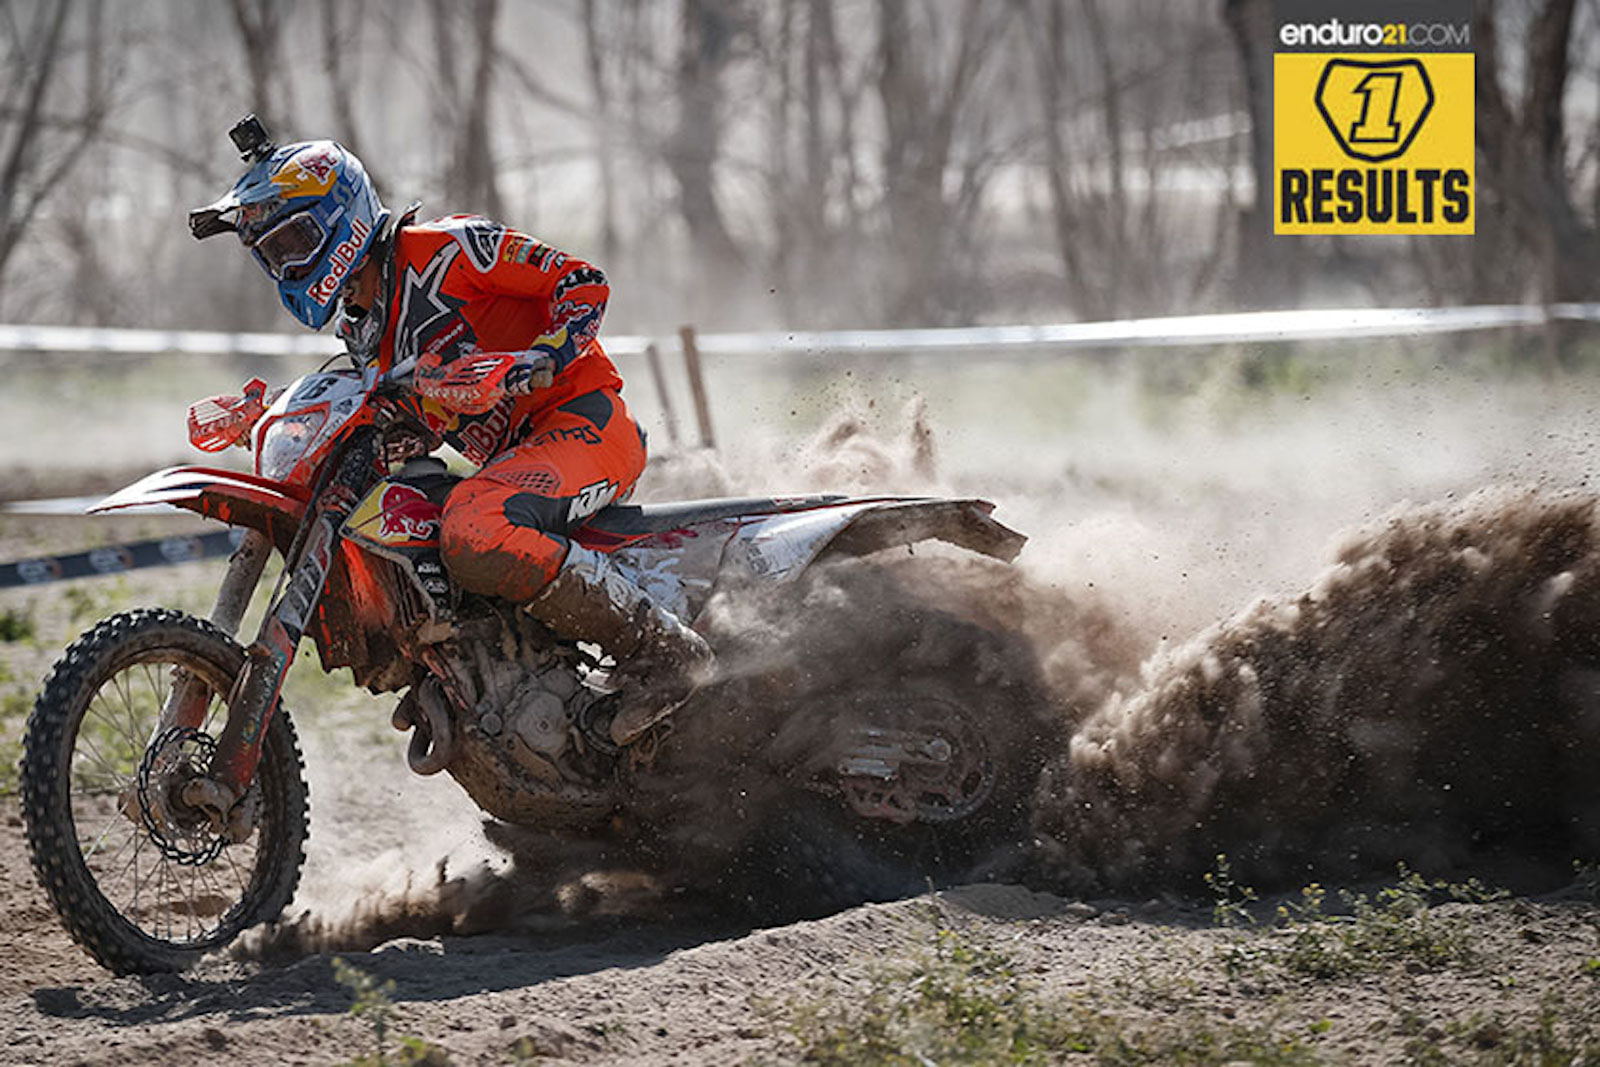 Results feed: BR2 Enduro Solsona 2019 WESS round 7 overall win for Garcia